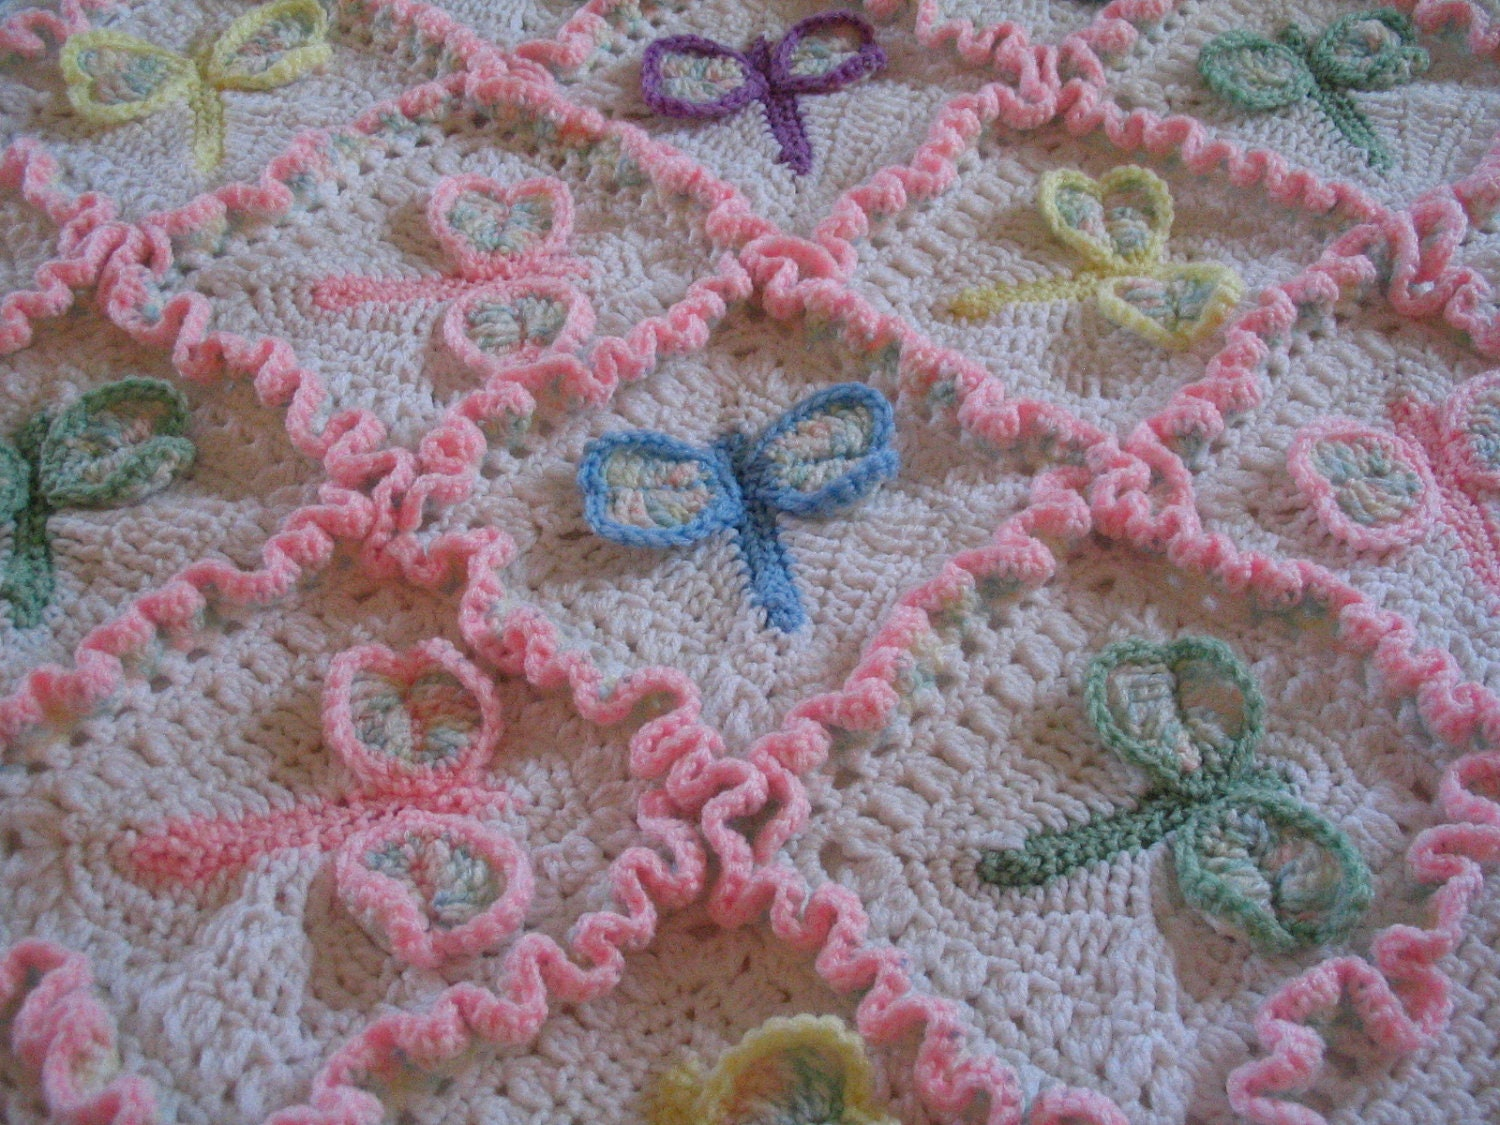 Crochet Dragonfly Baby Blanket Pattern : Dragonfly Dreams Crocheted Baby Afghan